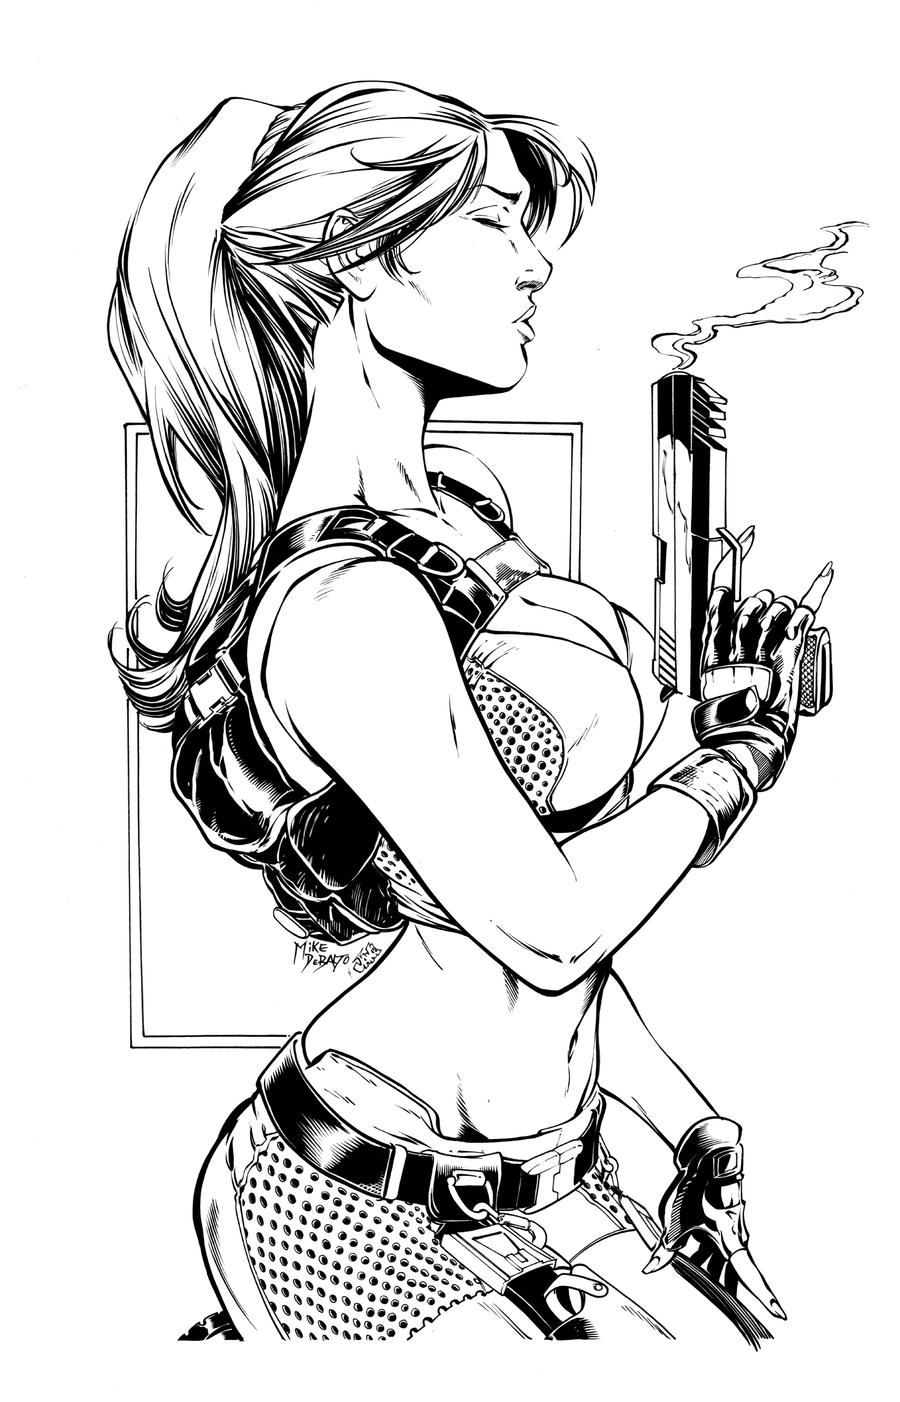 Lara Croft ink by Inker-guy